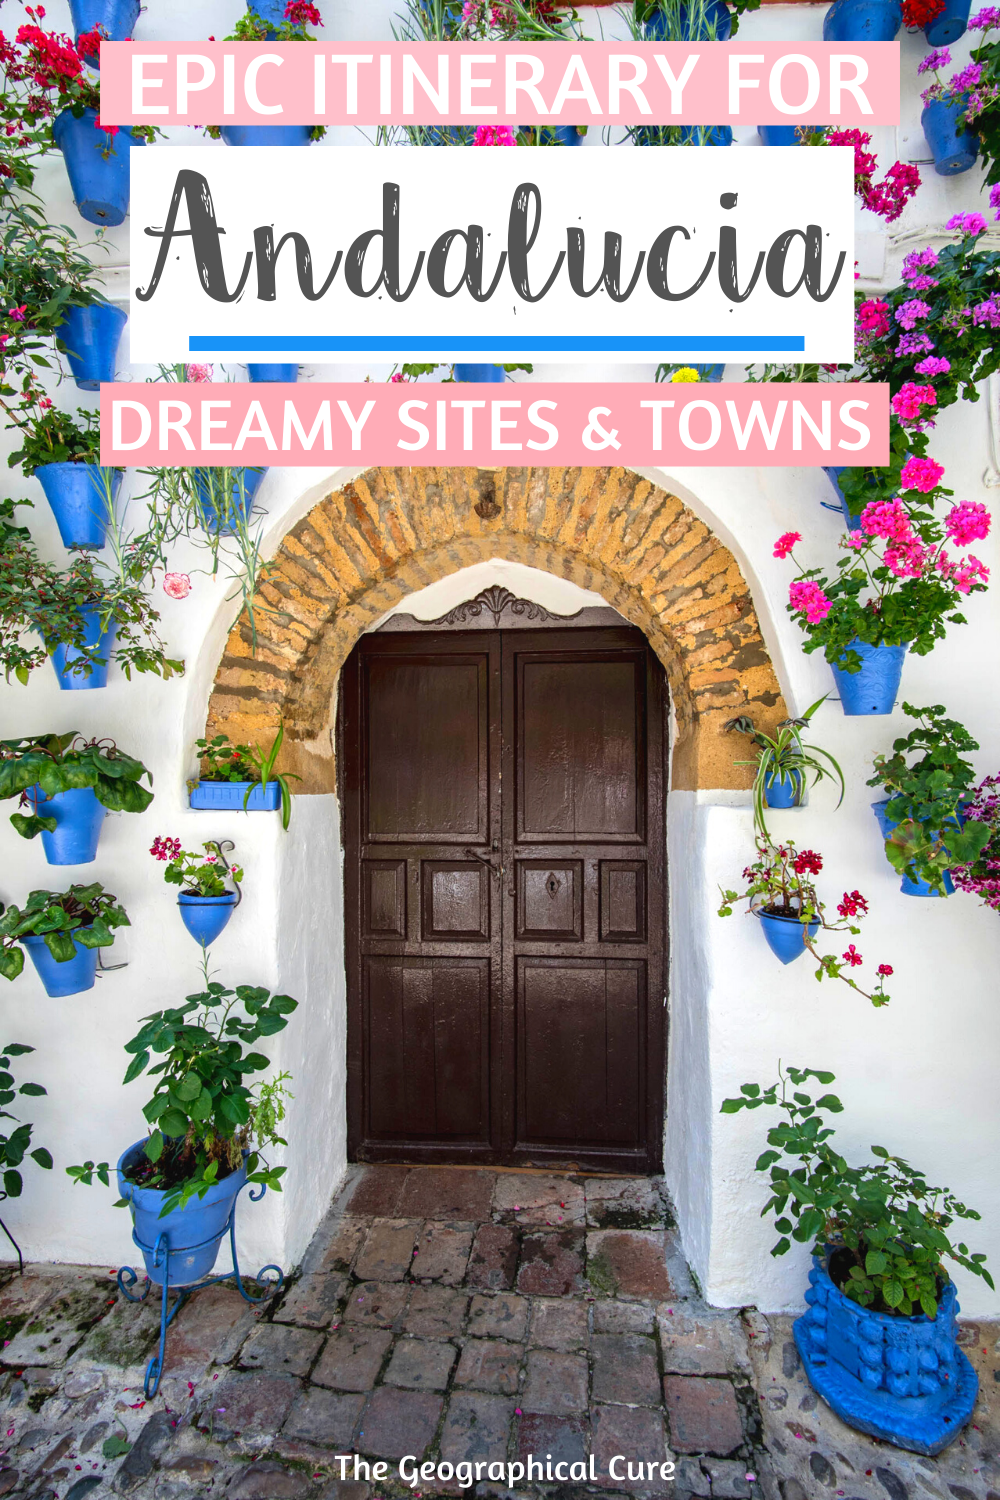 Planning a trip to sunny Andalucia? Here's the perfect 10 day road trip itinerary. You'll visit all the best sites in southern Spain -- ancient mosques turned into churches, ornate palaces, soaring Gothic cathedrals, and white pueblo towns. From Seville to Granada, here are the best things to see and do on a visit to Andalucia in southern Spain. You'll visit all the must see sites and hidden gems in southern Spain. #Andalusia #Seville #Granada #Cordoba #Spain #ItinerariesForSpain #Alhambra